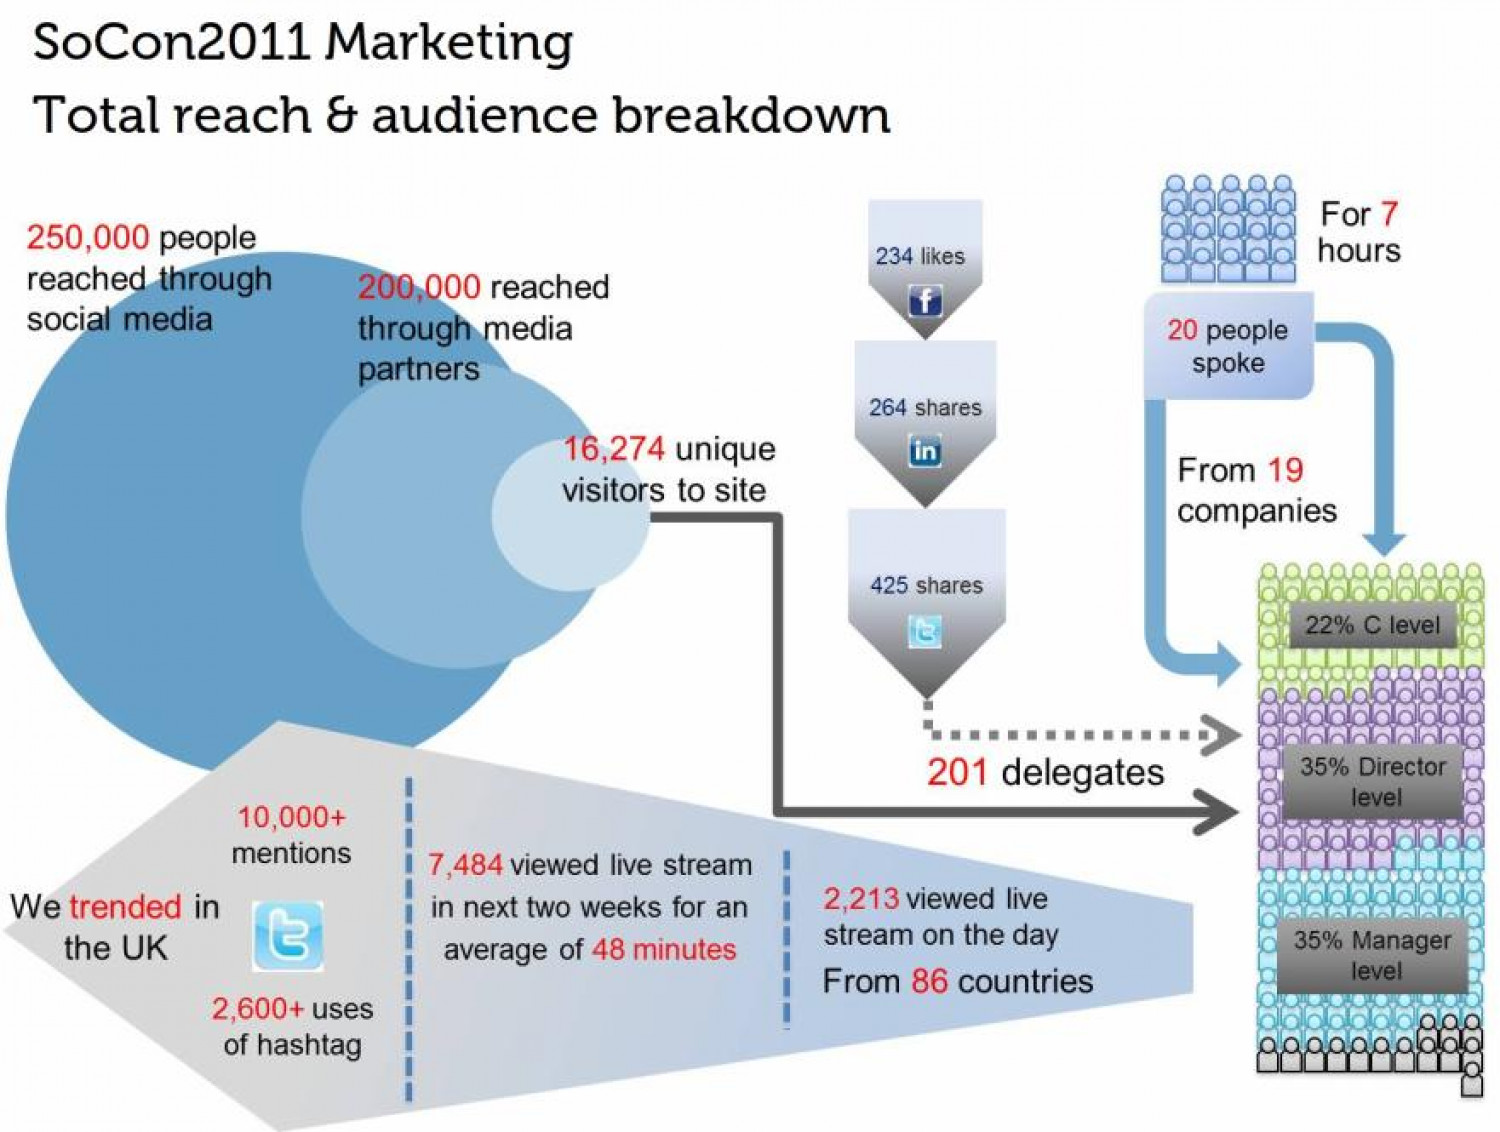 EBriks - Socon Marketing Conference Statistics 2011 Infographic